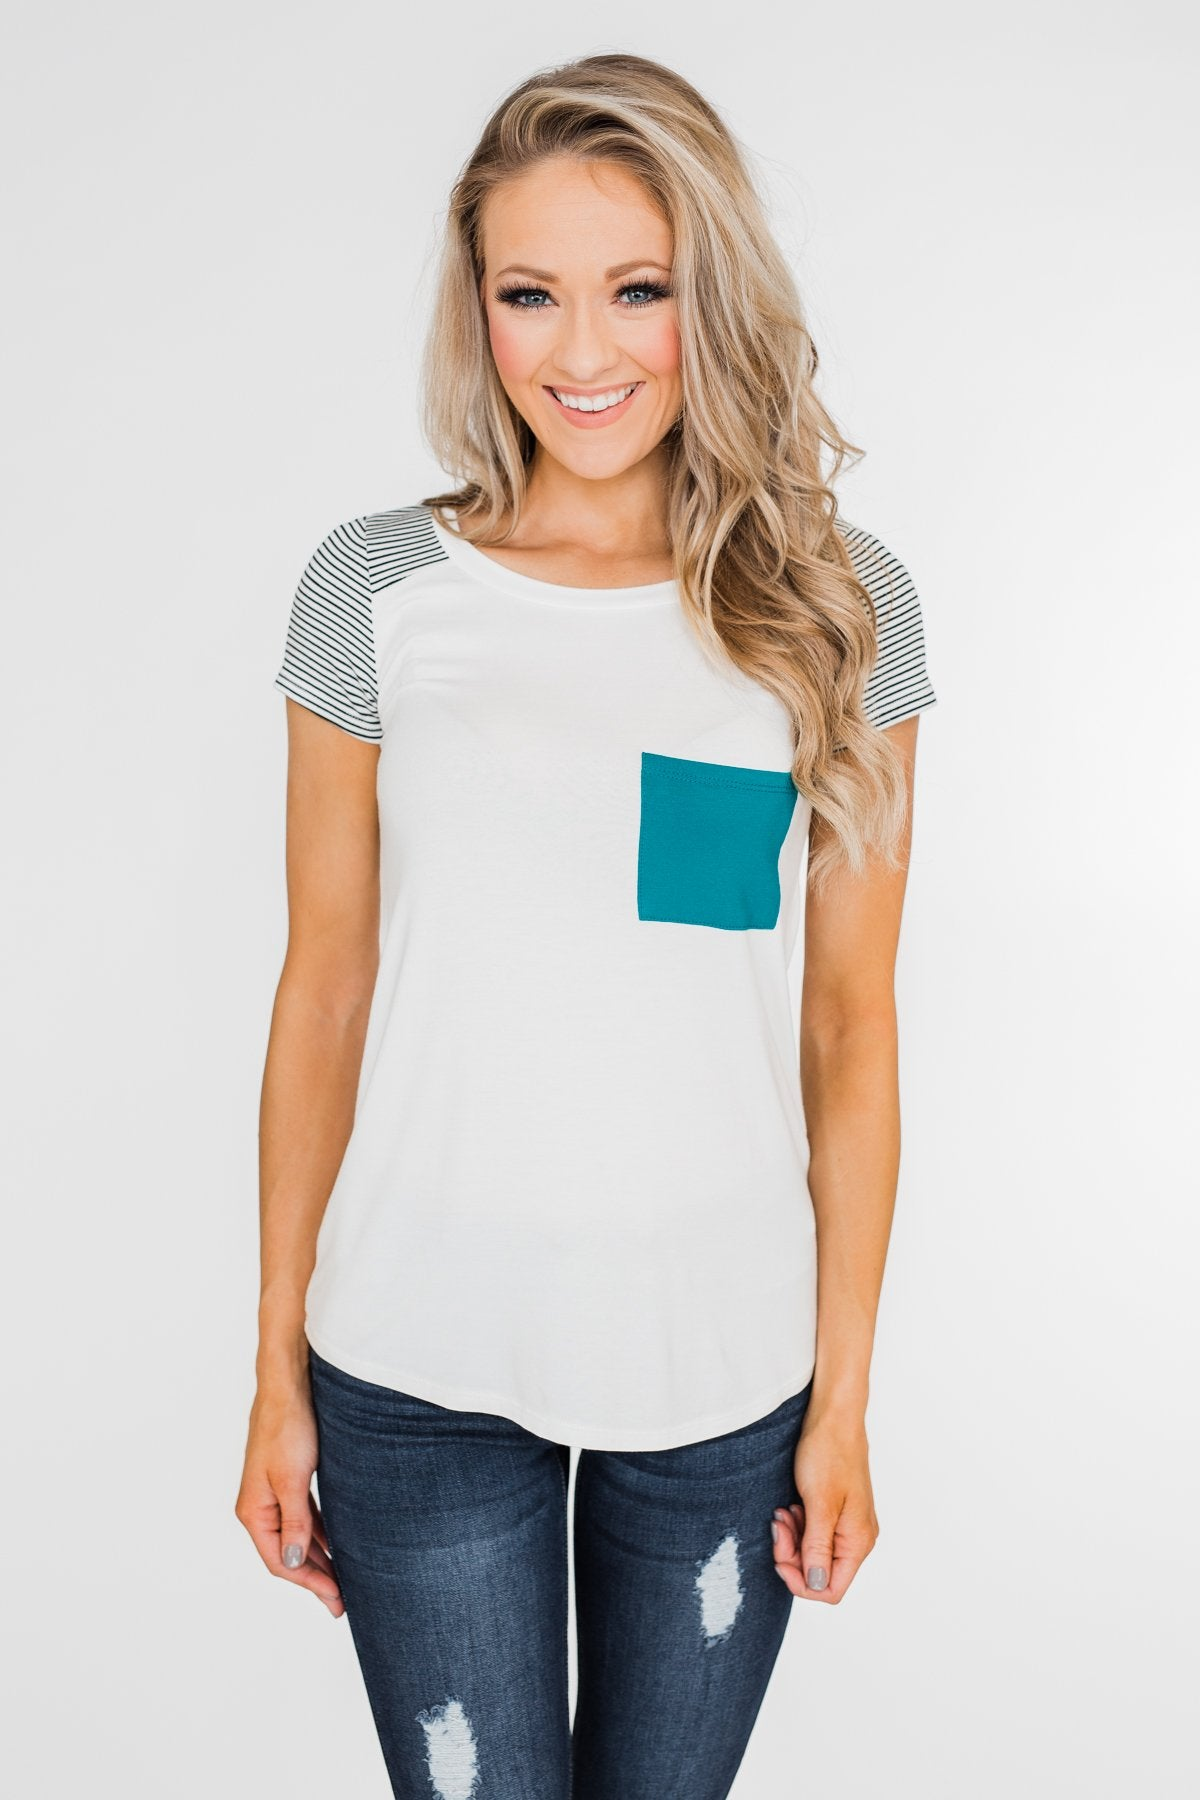 Meet Me Here Short Sleeve Top- Charcoal